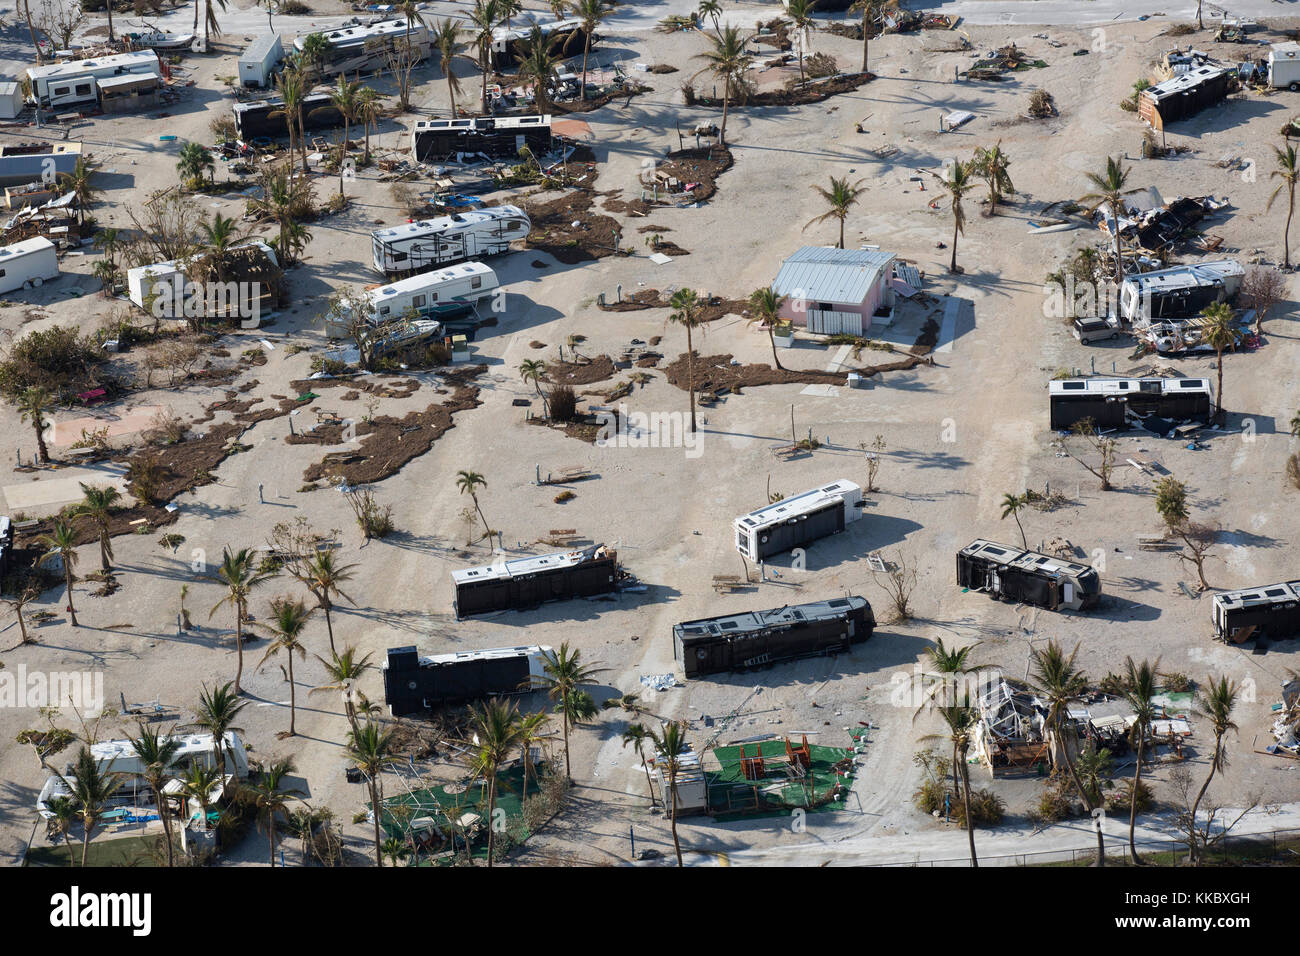 Aerial view of damaged RVs and trailers strewn around a trailer park in the aftermath of Hurricane Irma September Stock Photo